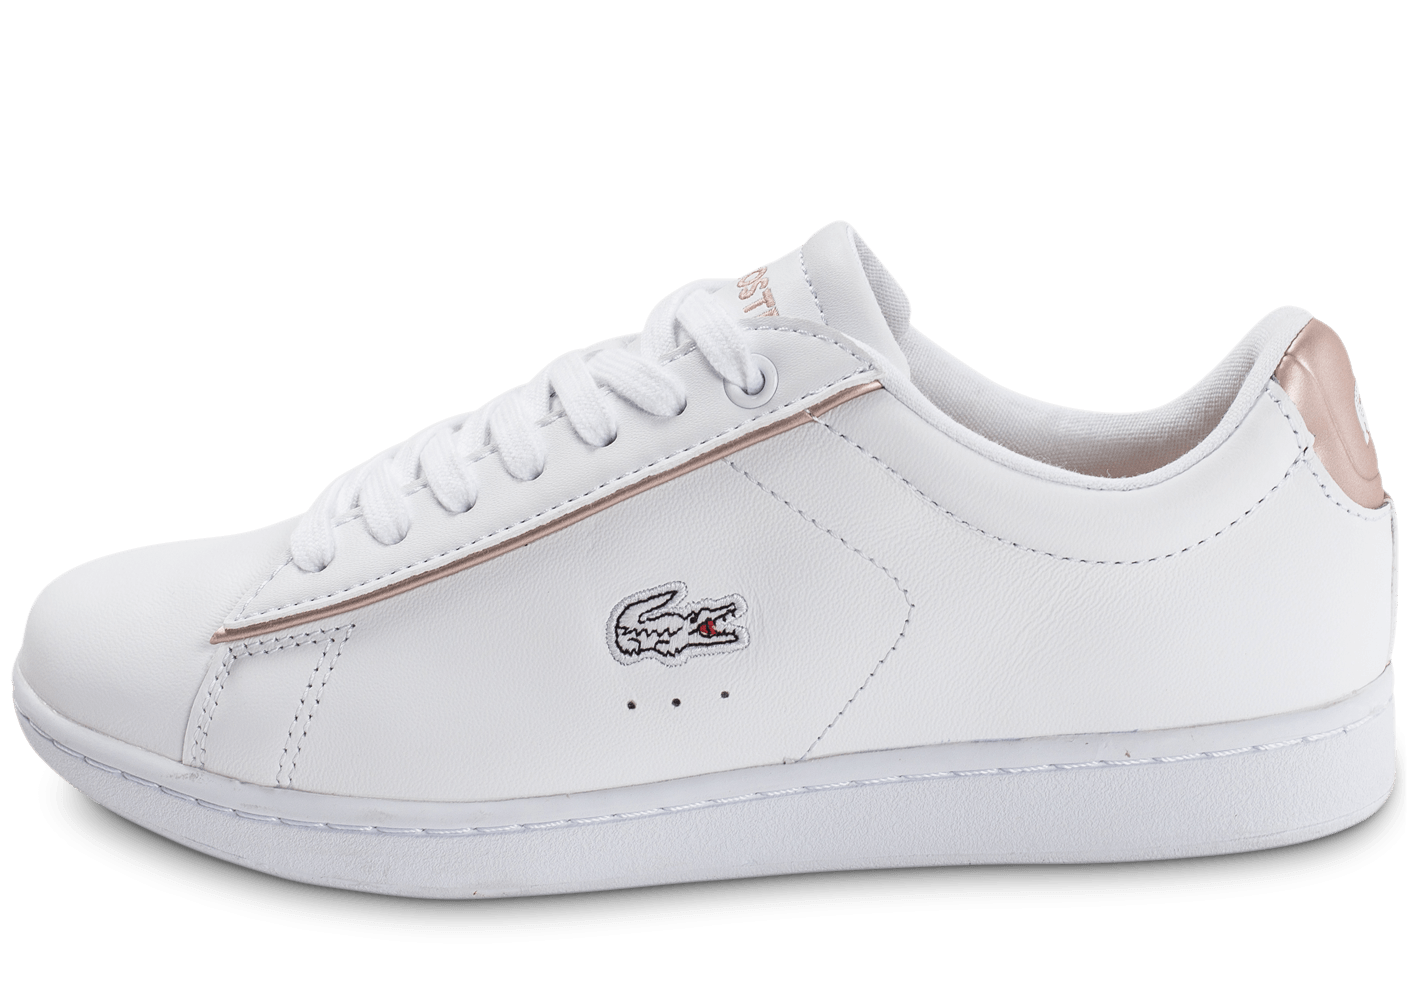 198de9601f27 Lacoste Carnaby EVO blanche et rose perle - Chaussures Baskets femme -  Chausport